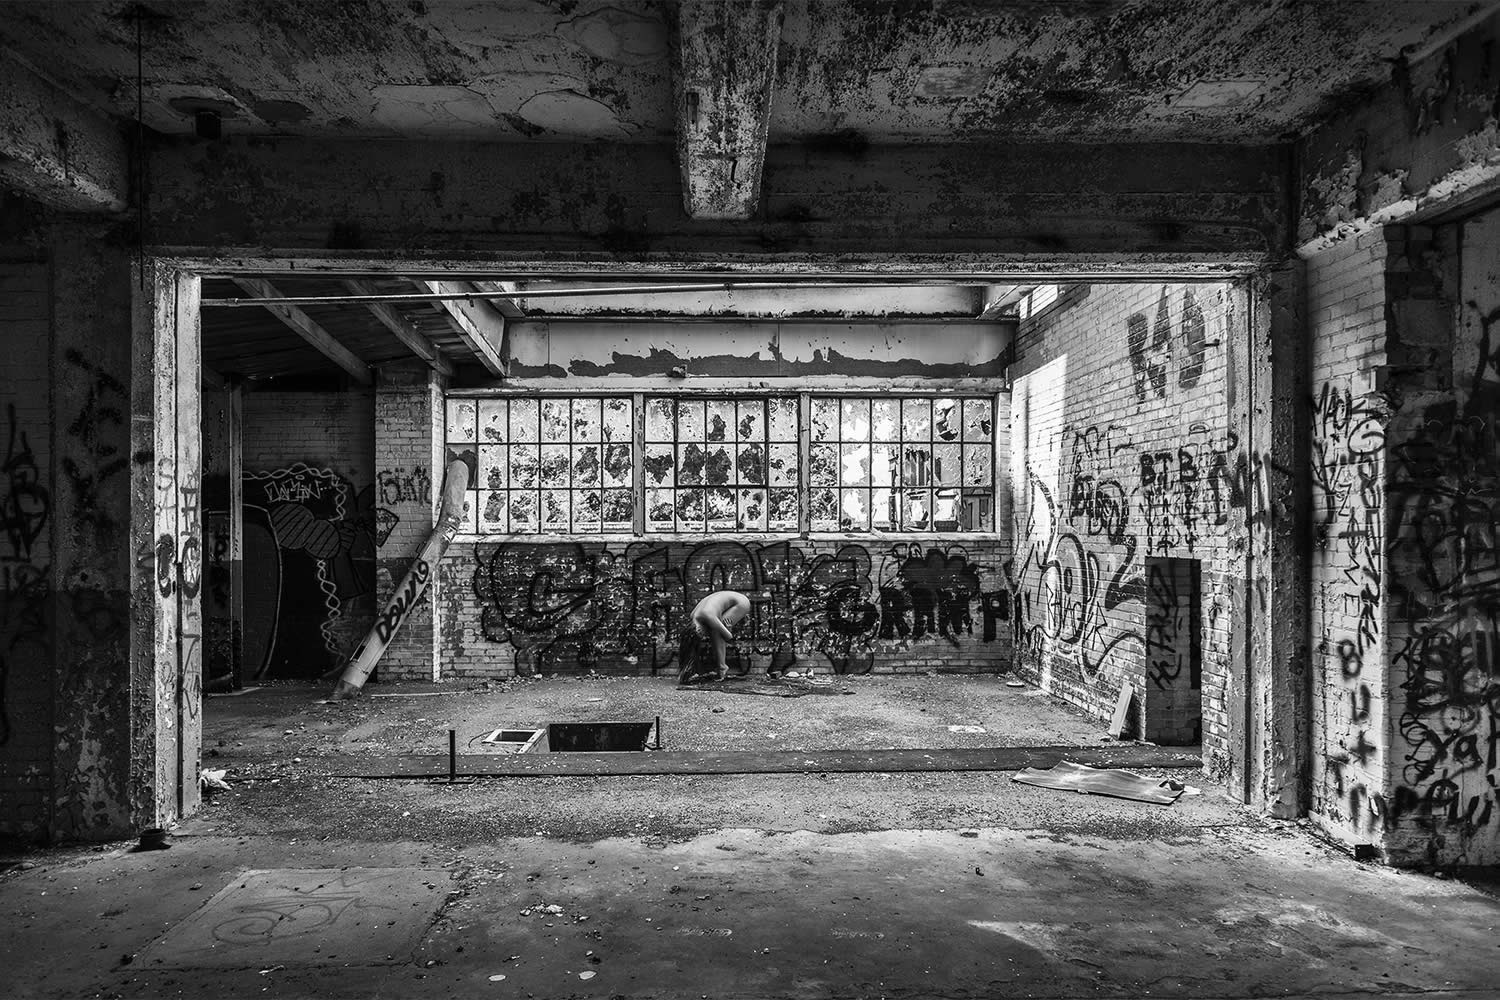 graffiti buidling, photography by brian cattelle